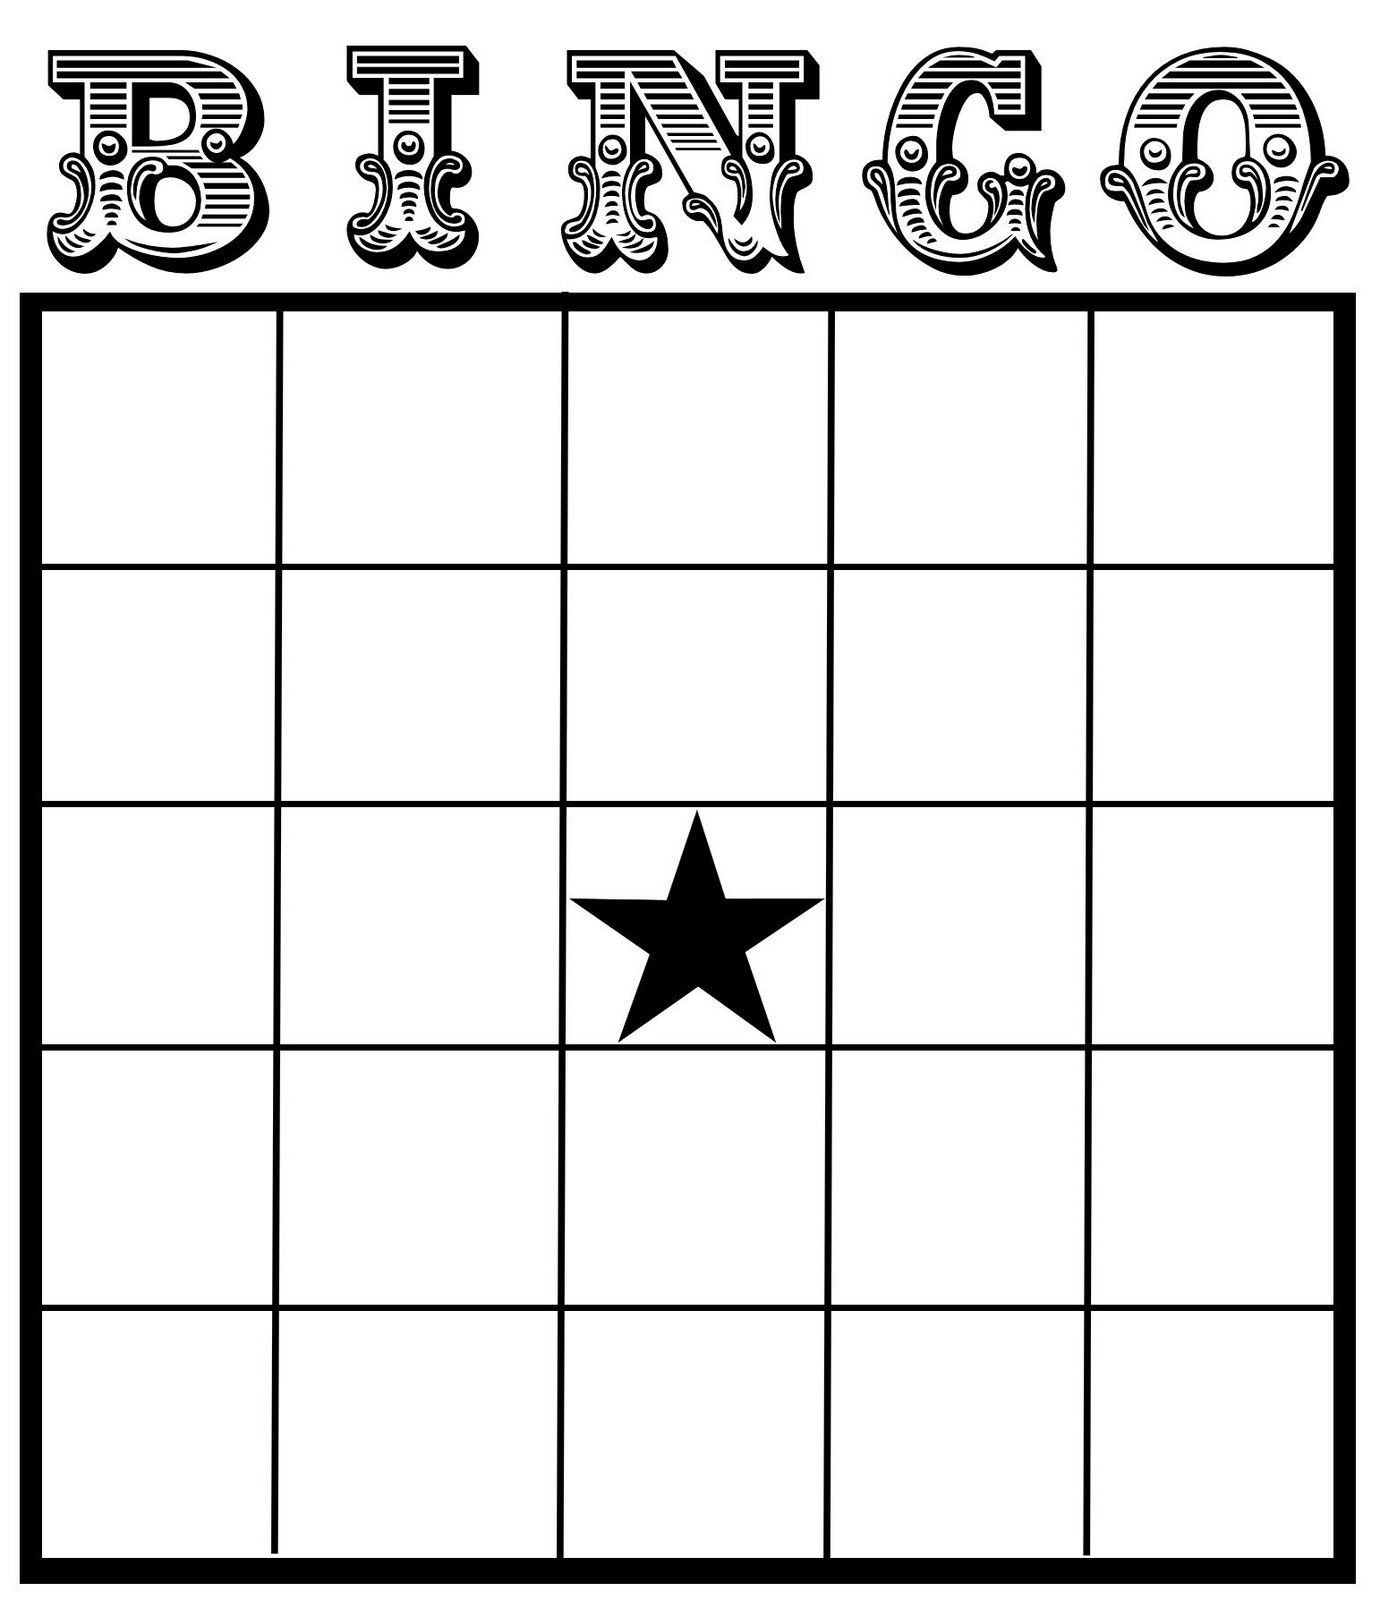 Bingo Card Printables To Share | Bingo Card Template, Bingo